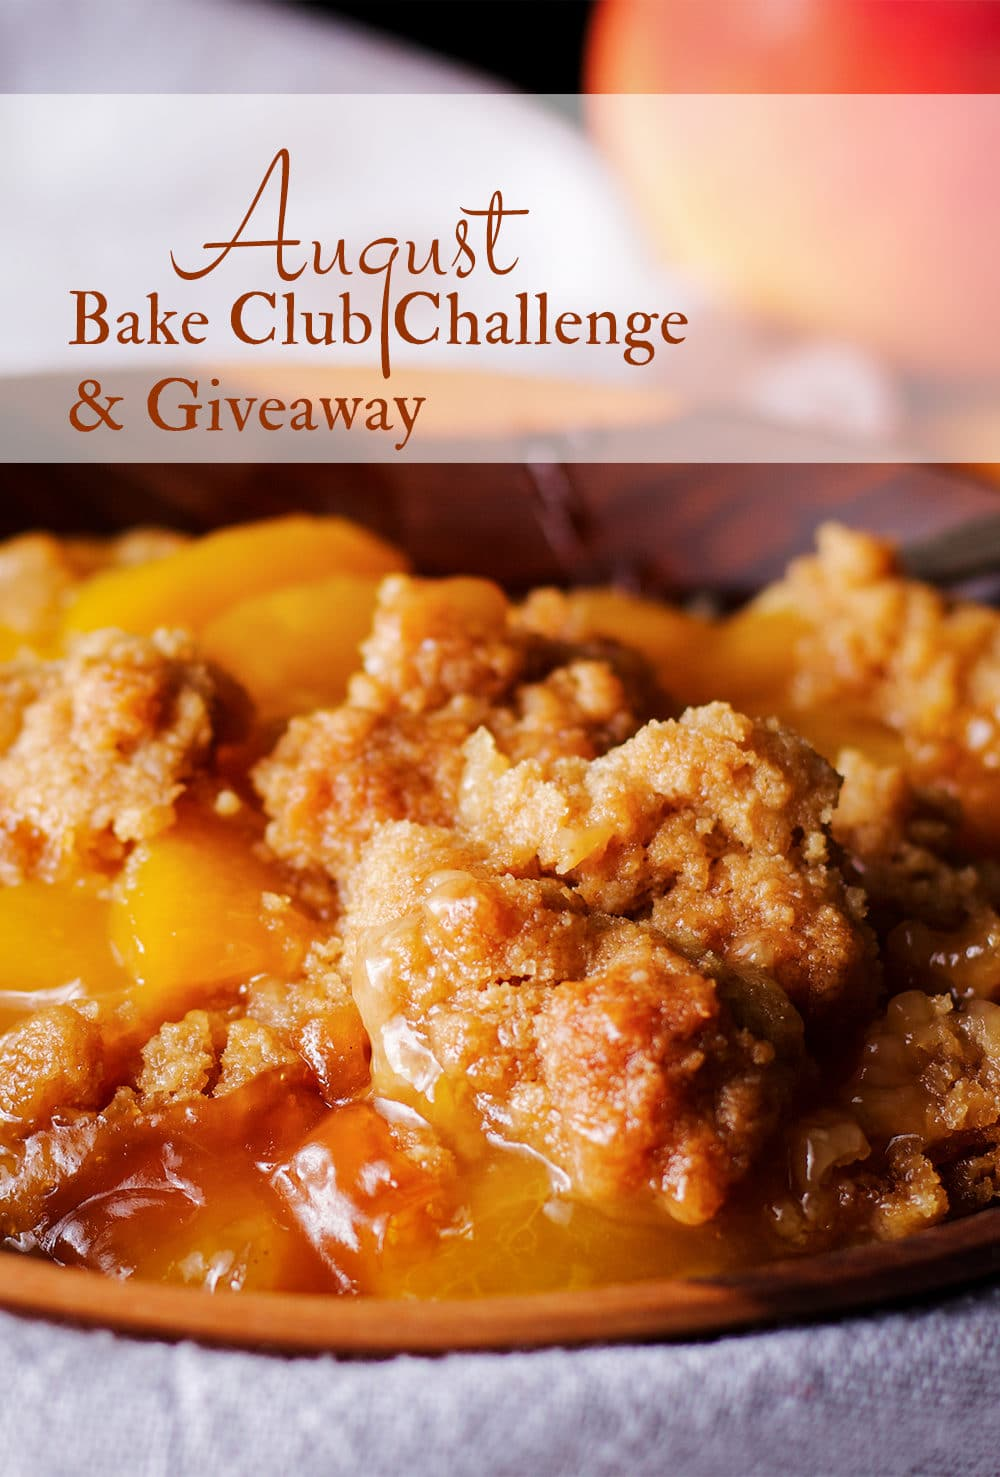 The August, 2020 Bake Club Challenge is Peach Cobbler